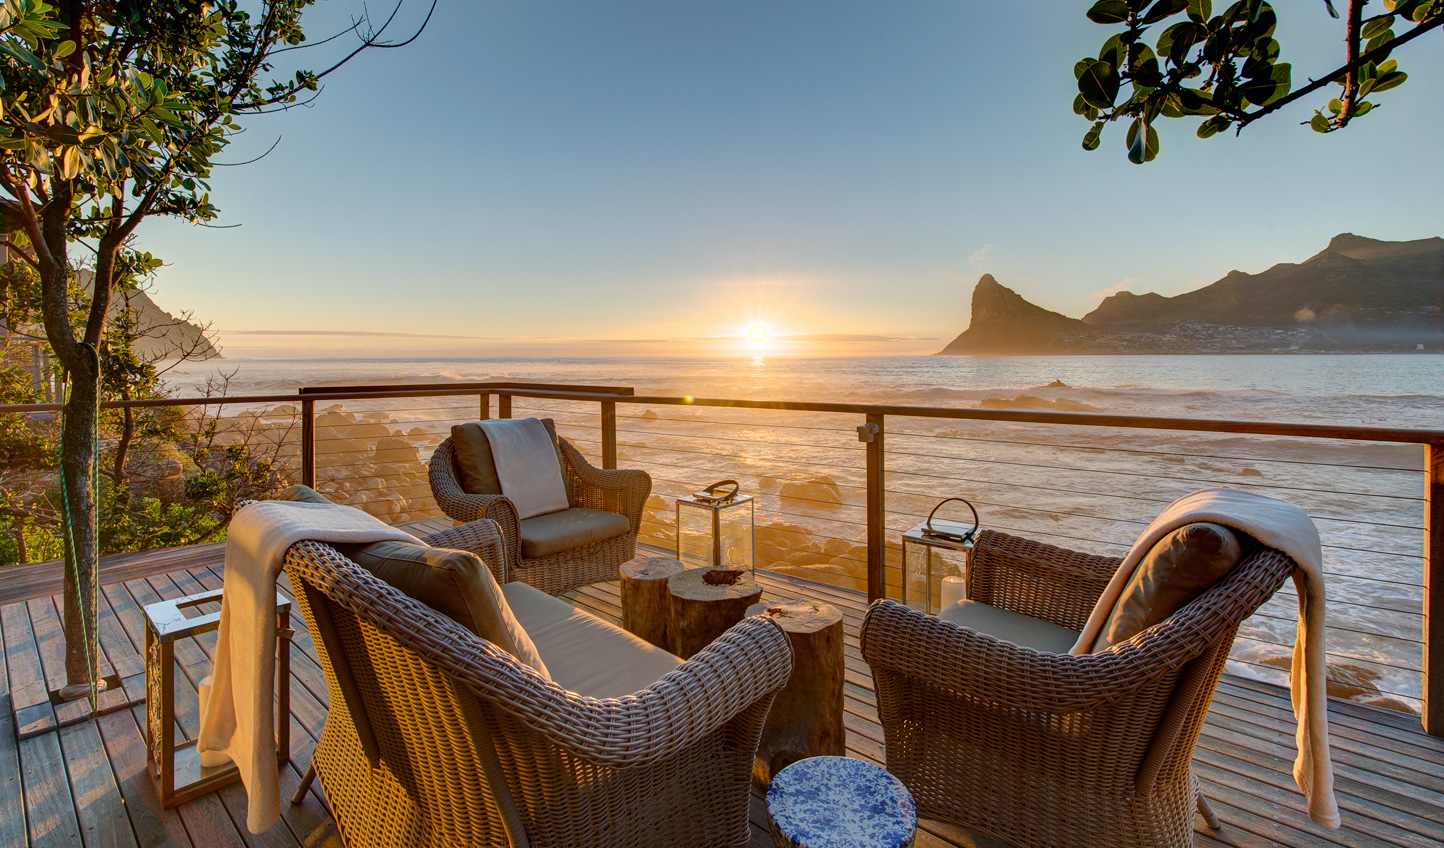 Unwind at Tintswalo Atlantic